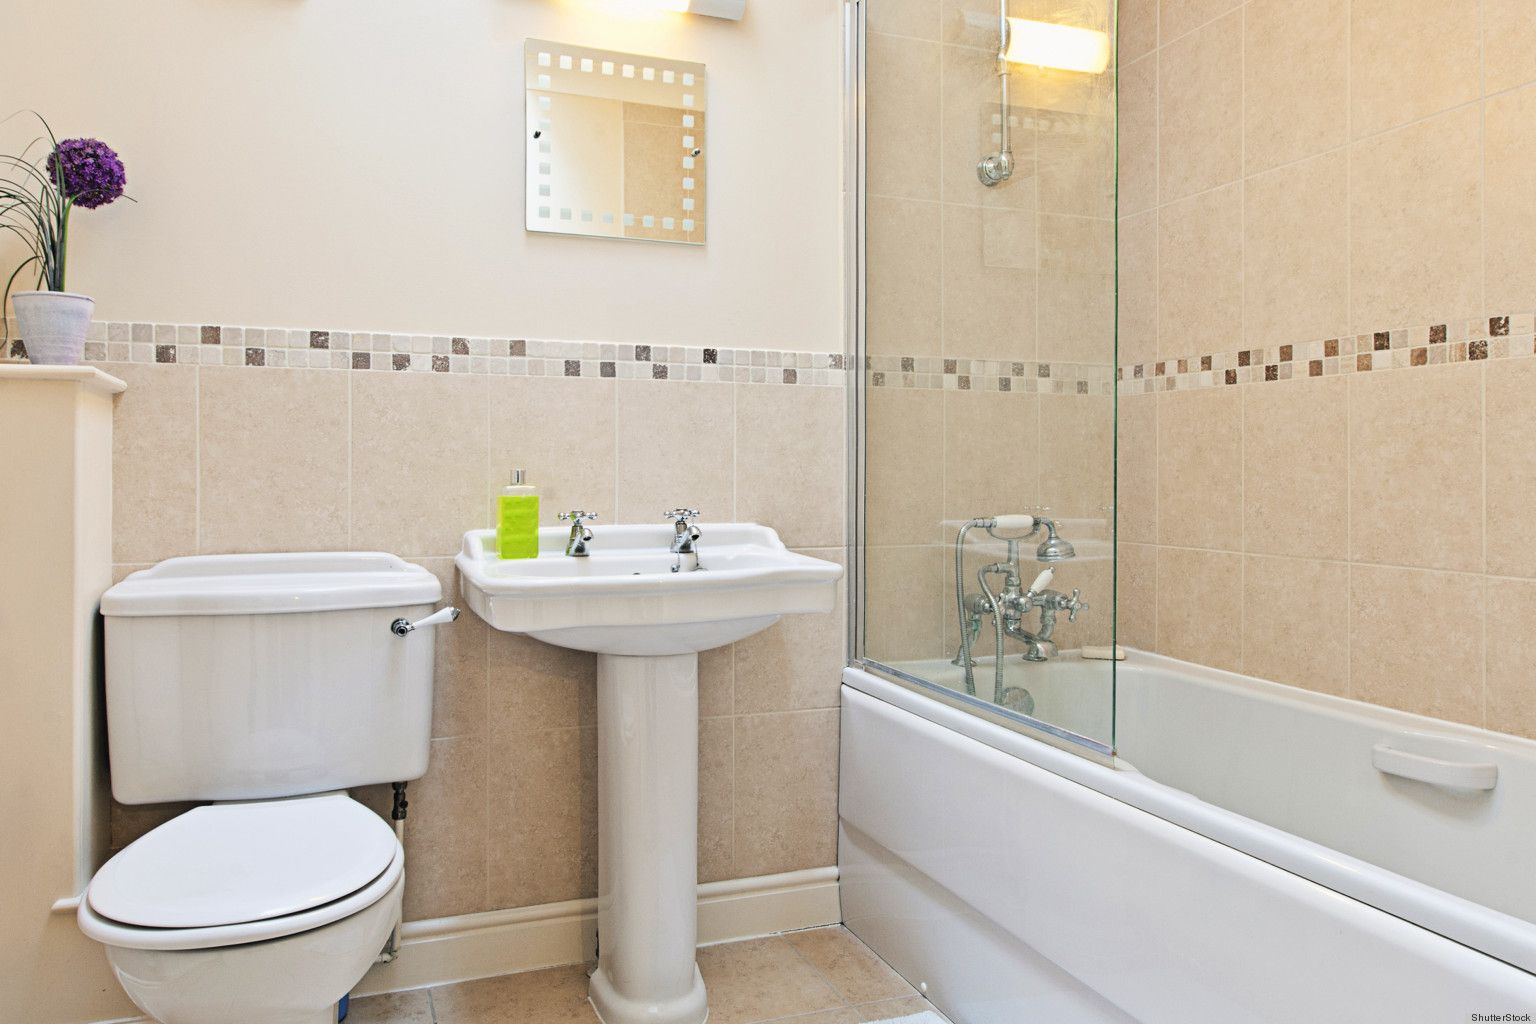 Best ways to clean a bathroom - The Best Ways To Spring Clean Your Bathroom